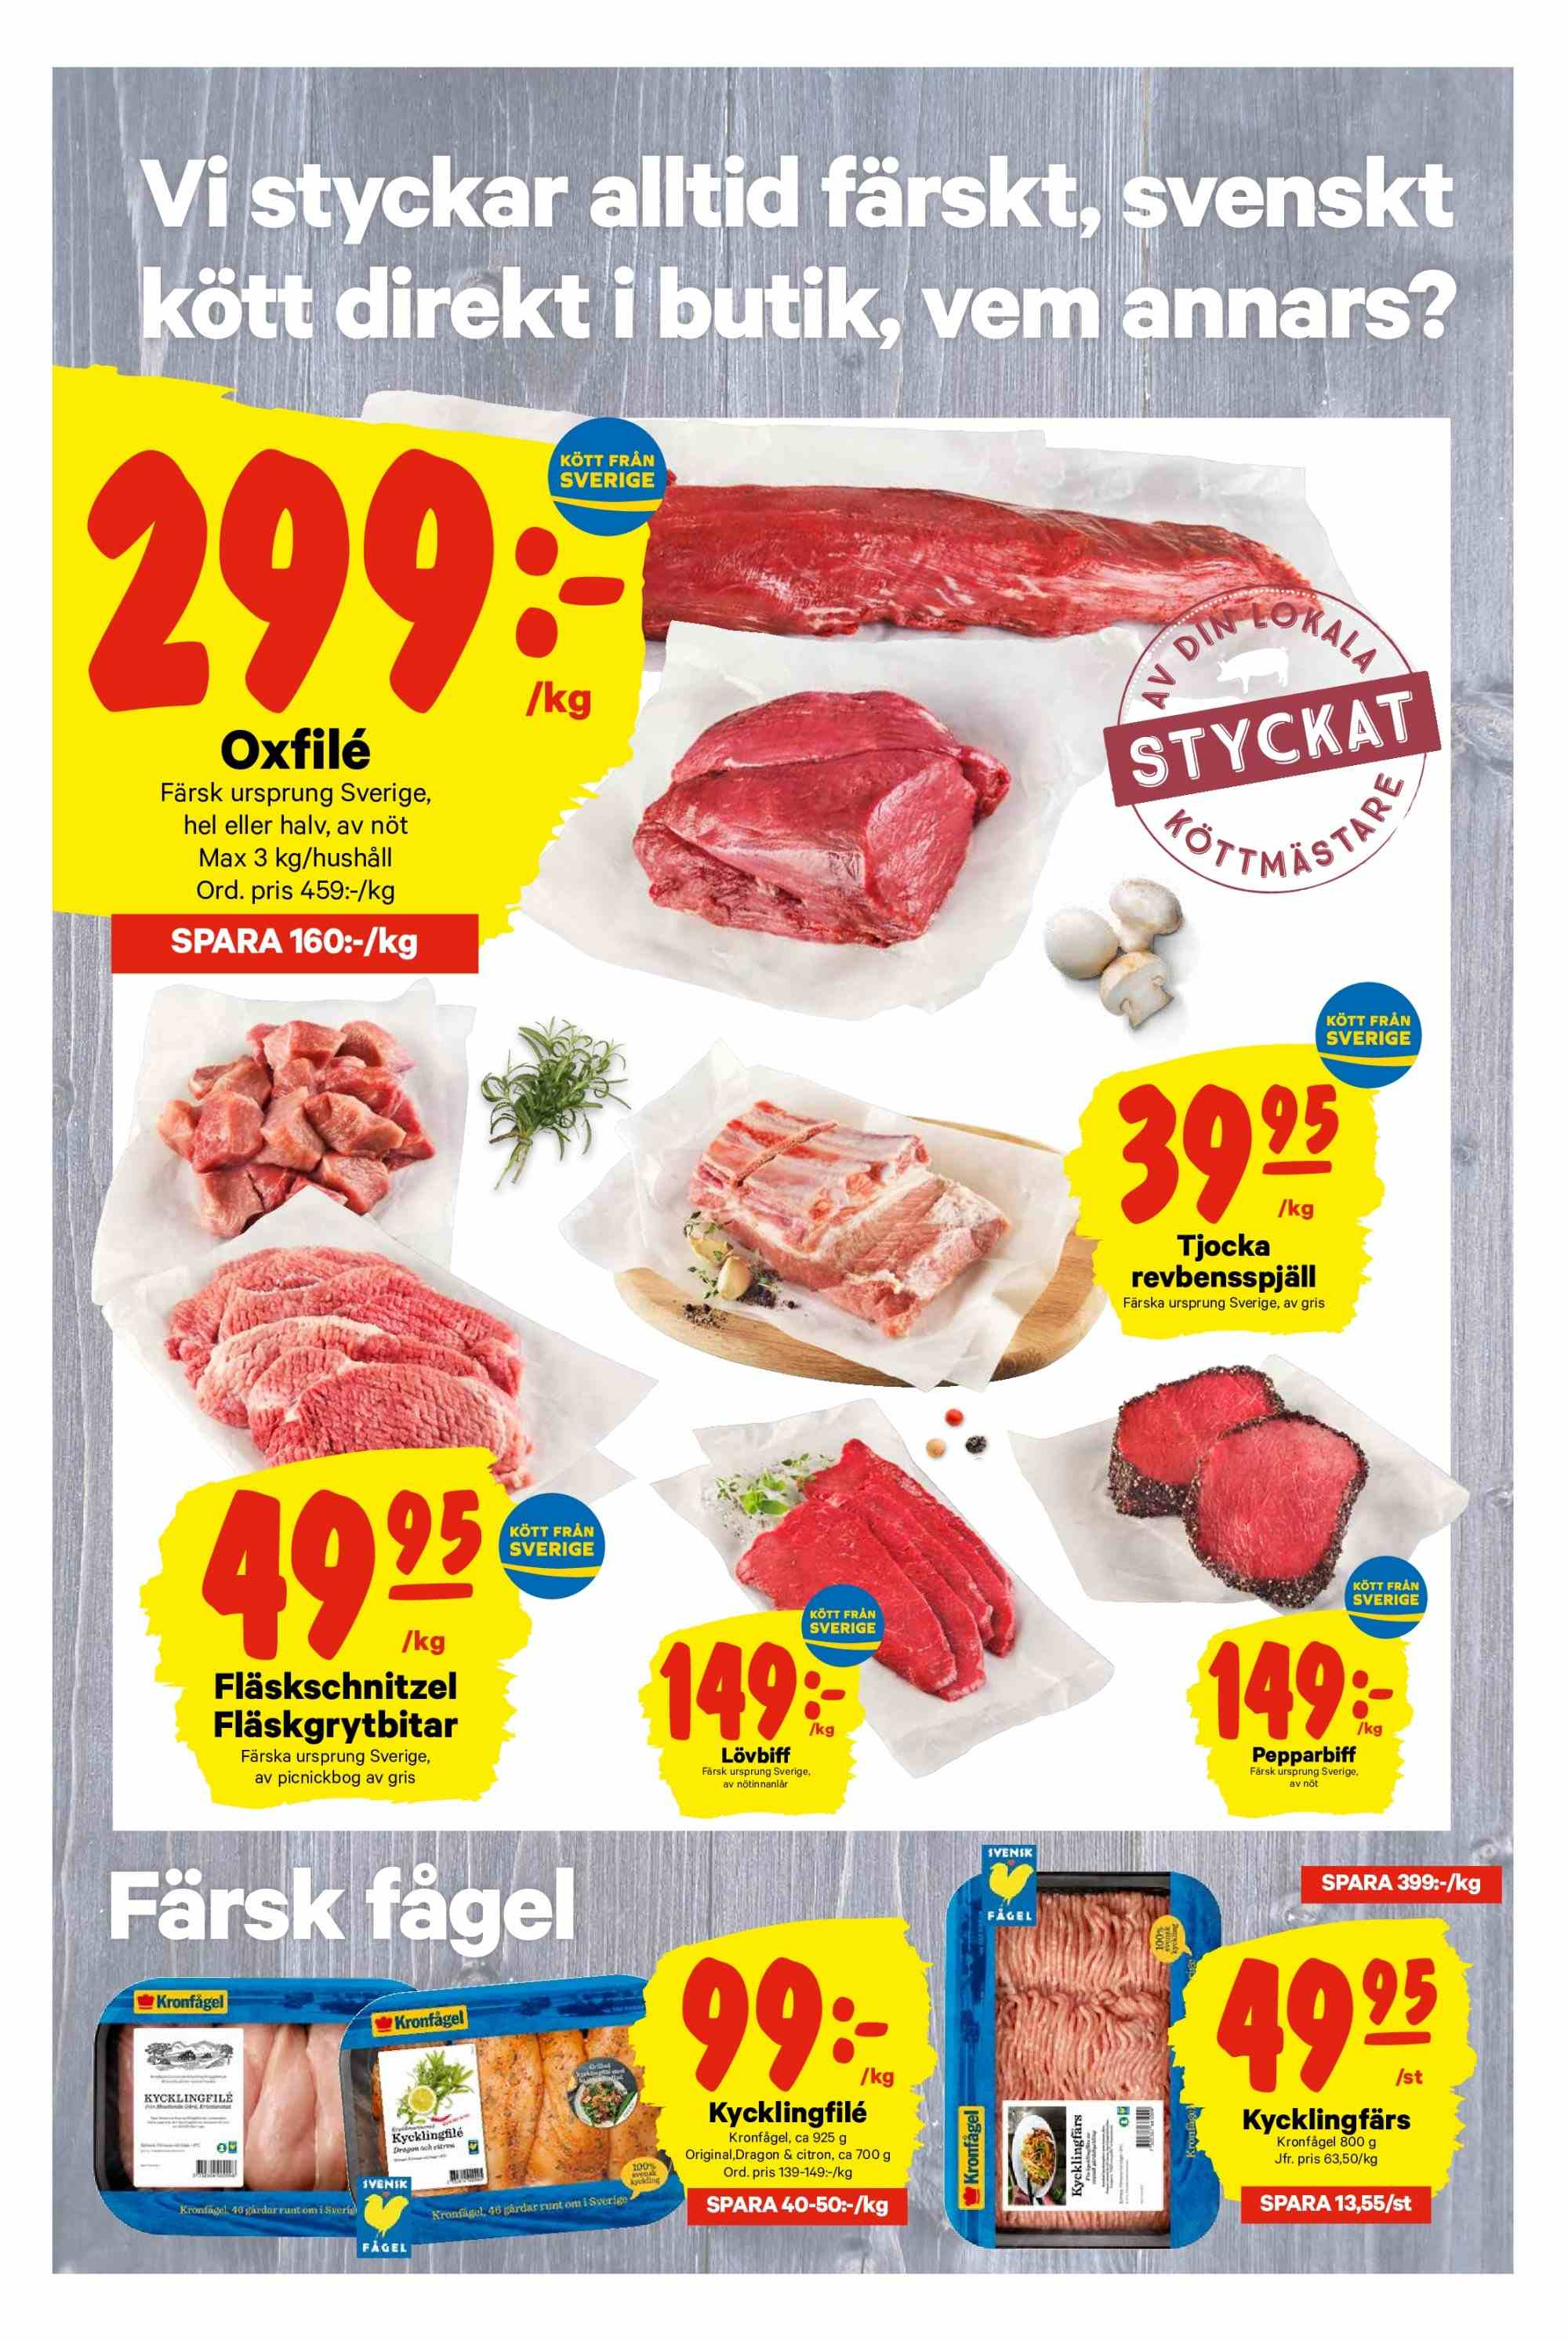 City Gross reklamblad - 25/2 2019 - 3/3 2019. Sida 2.